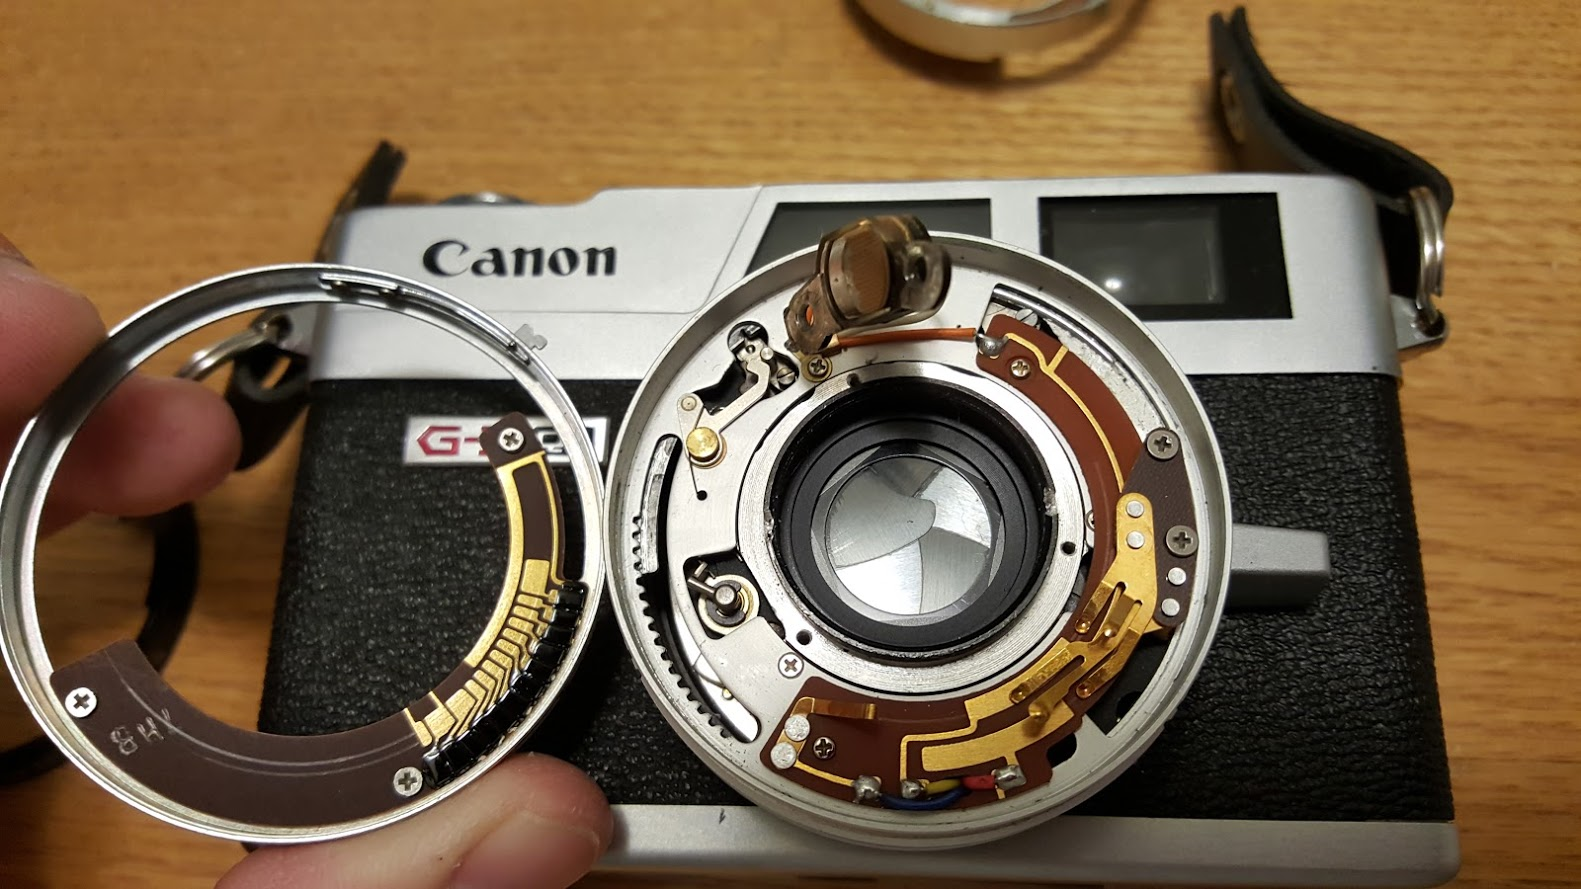 canonet ql19 repair manual